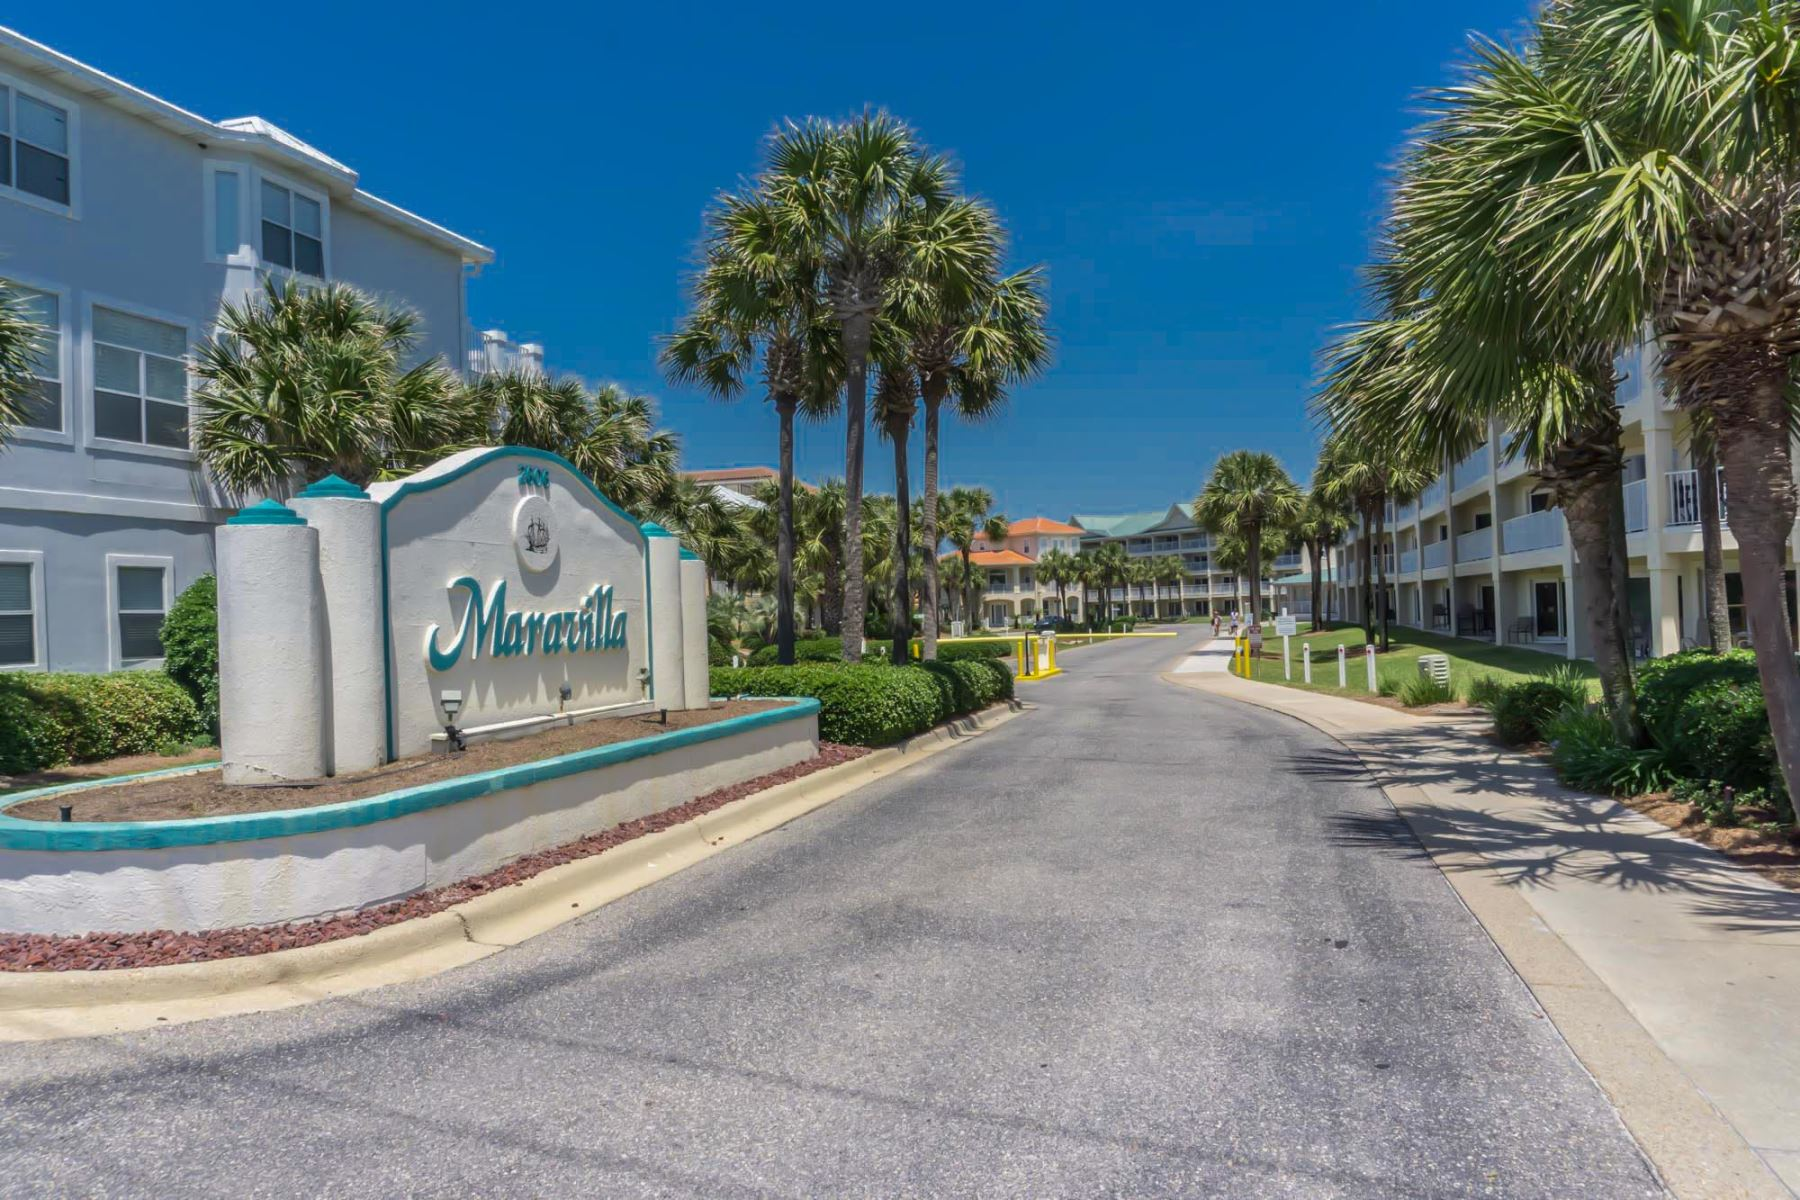 Maravilla in Miramar Beach near Destin FL. Entrance from 2606 Scenic Gulf Drive.